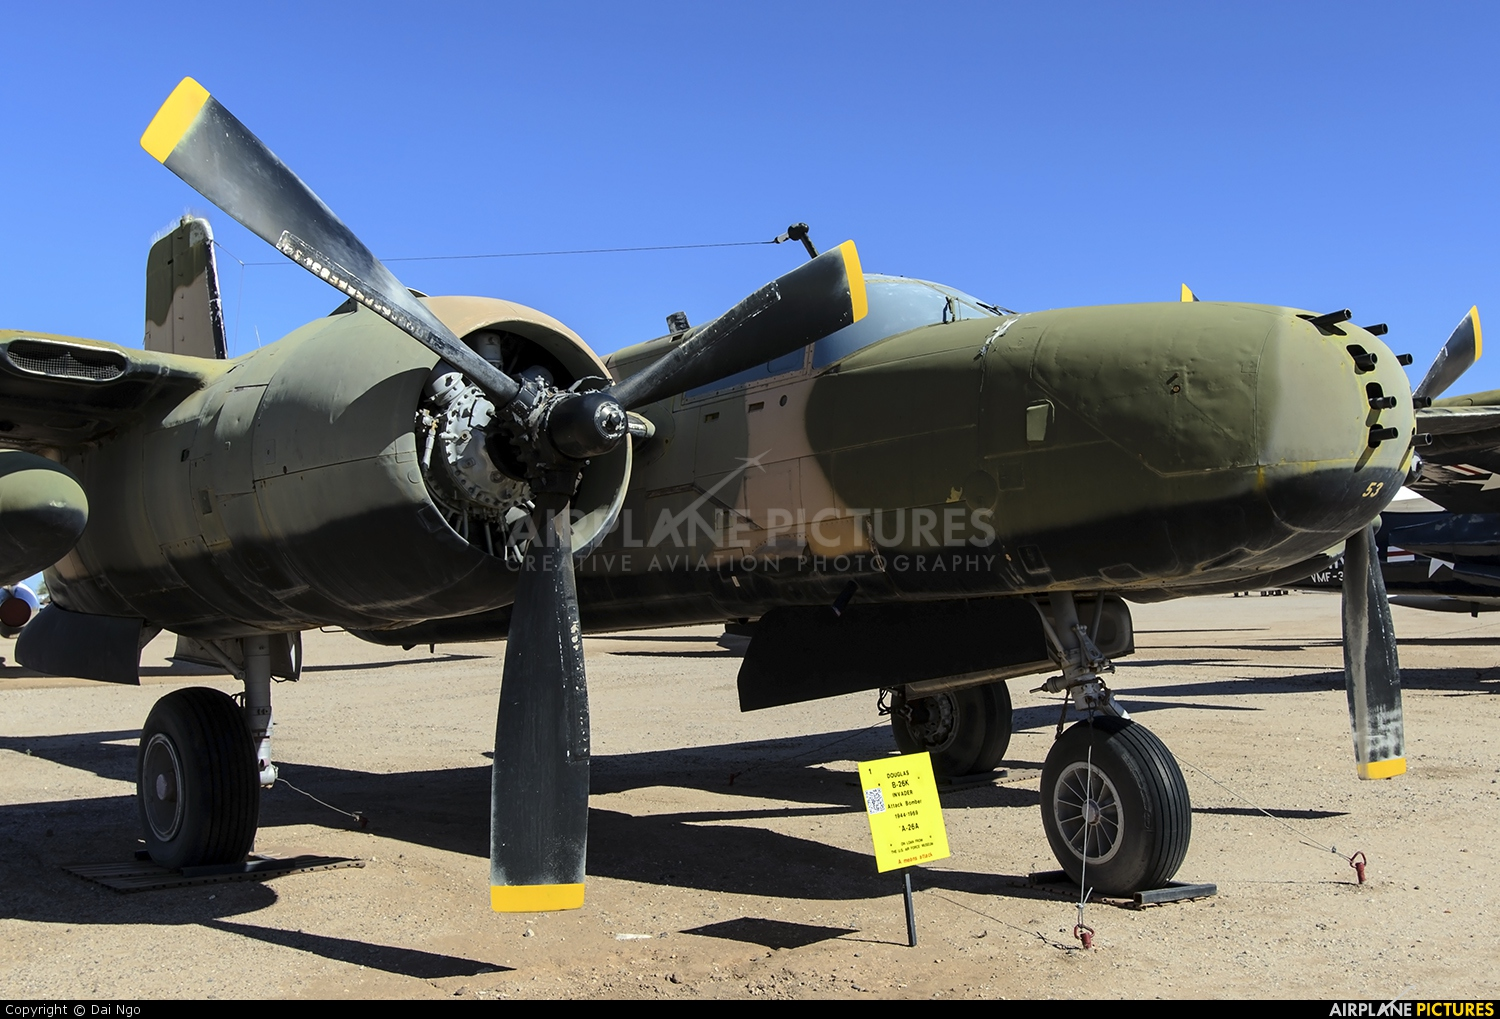 USA - Air Force 64-17653 aircraft at Tucson - Pima Air & Space Museum